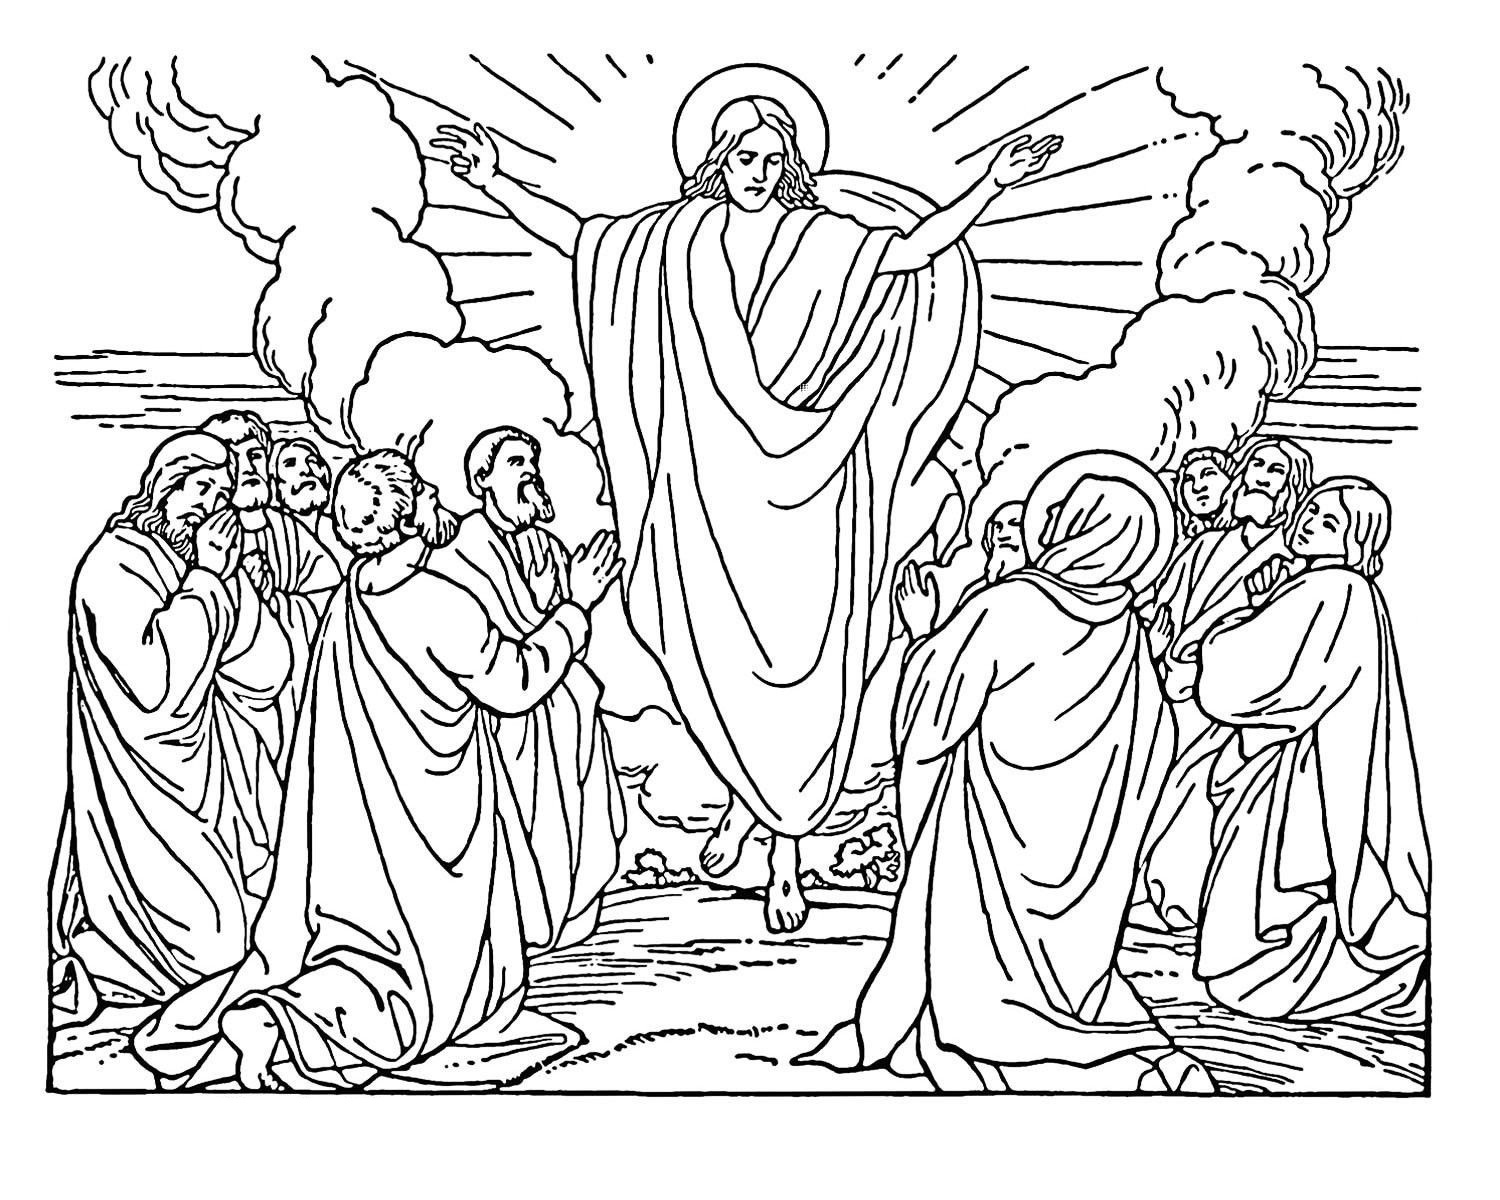 Free Printable Bible Coloring Pages For Kids Coloring Pages Religious